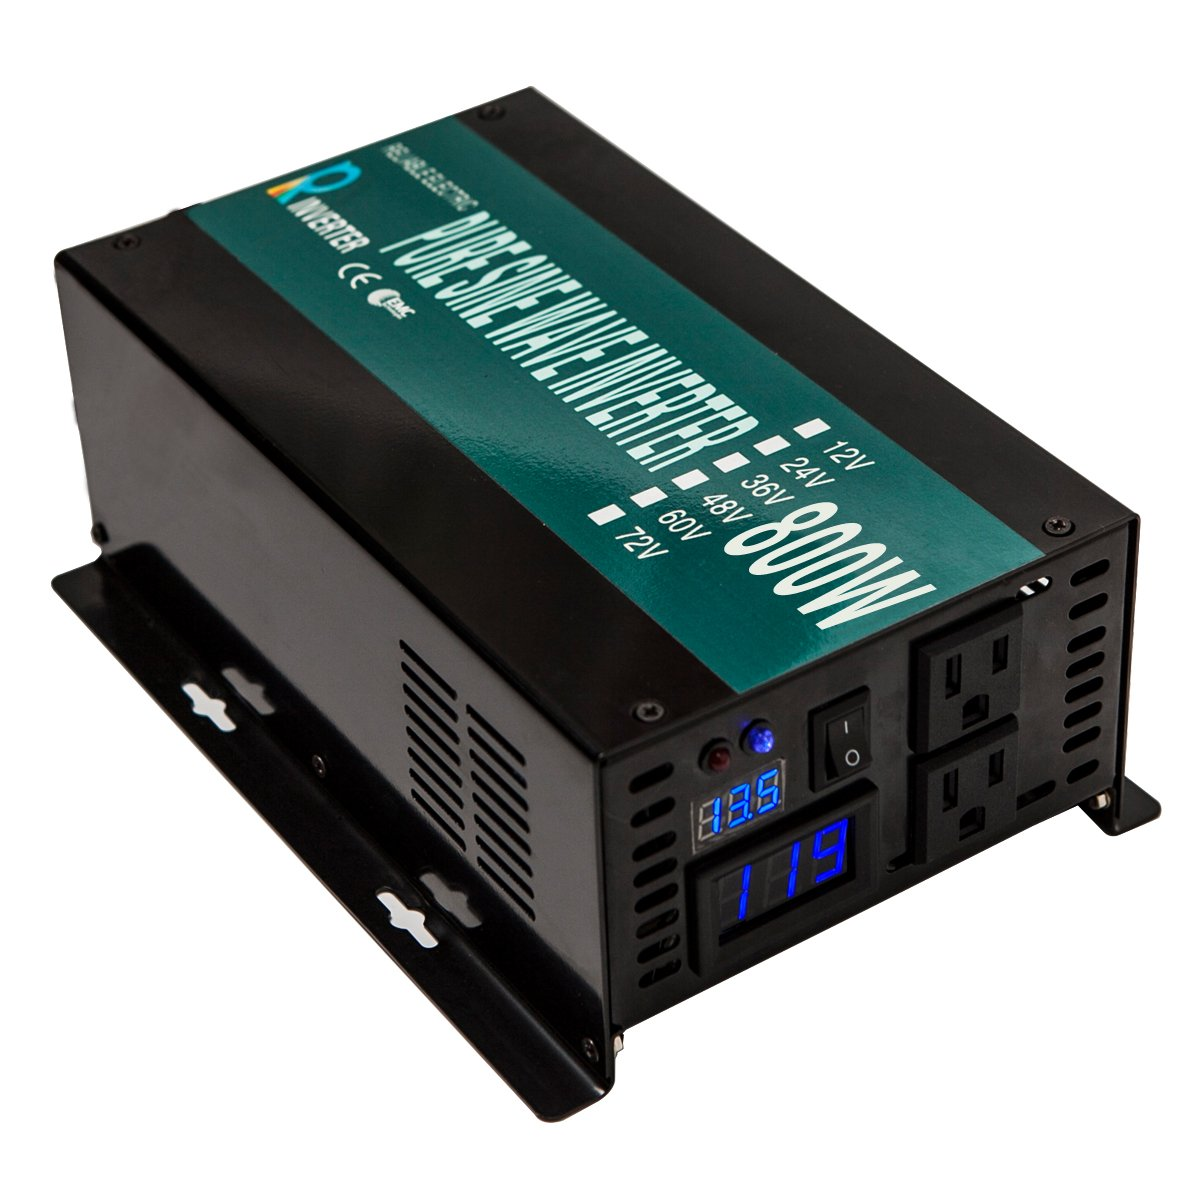 WZRELB Full Power Full Power Endurable Led Display 800W Pure Sine Wave Solar Inverter 12Vdc to 120Vac, RBP80012B1